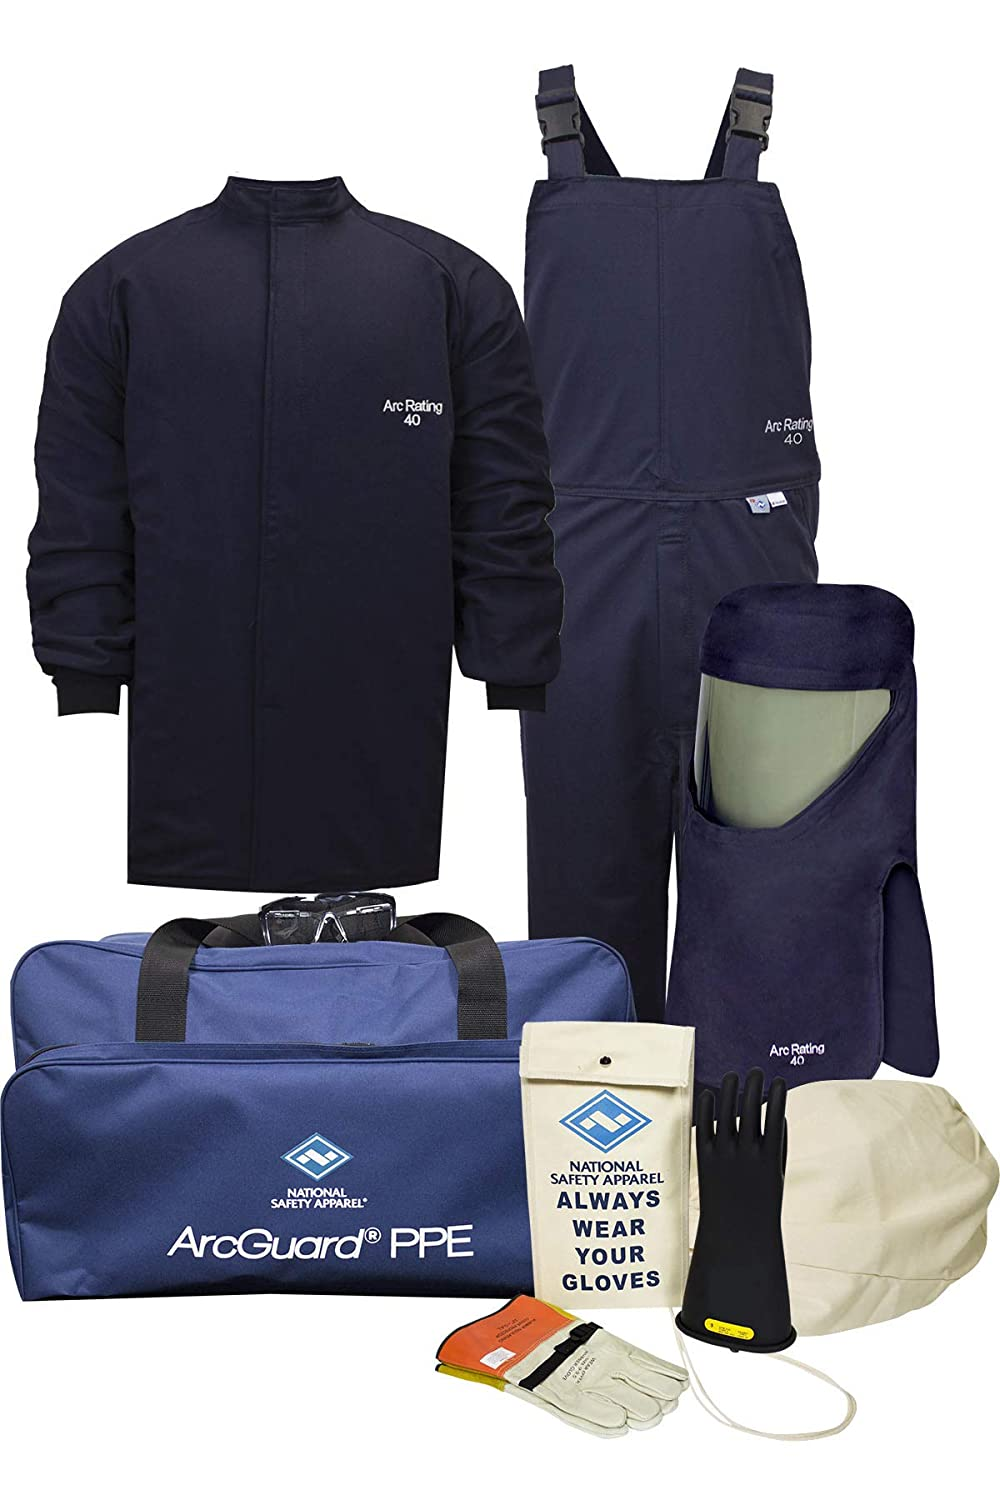 National Safety Apparel KIT4SC40XL10 ArcGuard Compliance CAT 4 Arc Flash Kit with FR Short Coat and Bib Overall, 40 Calorie, X-Large/Glove Size 10, Navy